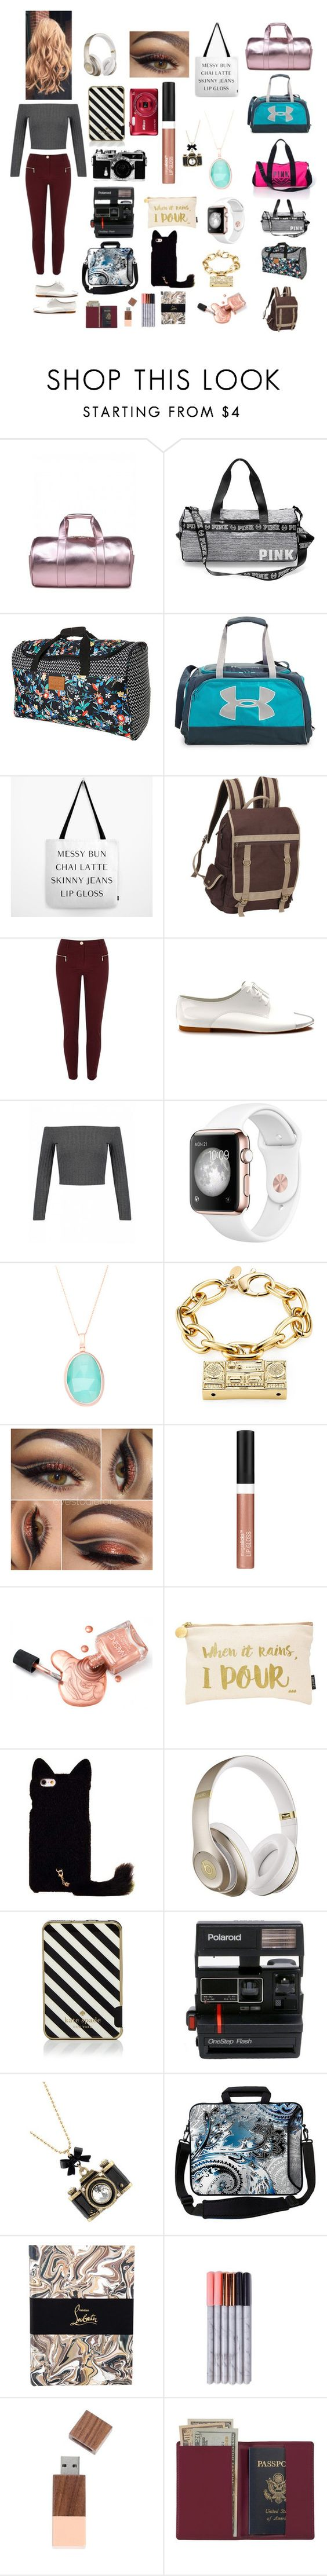 """""""Chloe Bennet (reporter)"""" by karabear3256 ❤ liked on Polyvore featuring Billabong, Under Armour, Preferred Nation, River Island, Shoes of Prey, Moschino, Wet n Wild, Nails Inc., Beats by Dr. Dre and Kate Spade"""